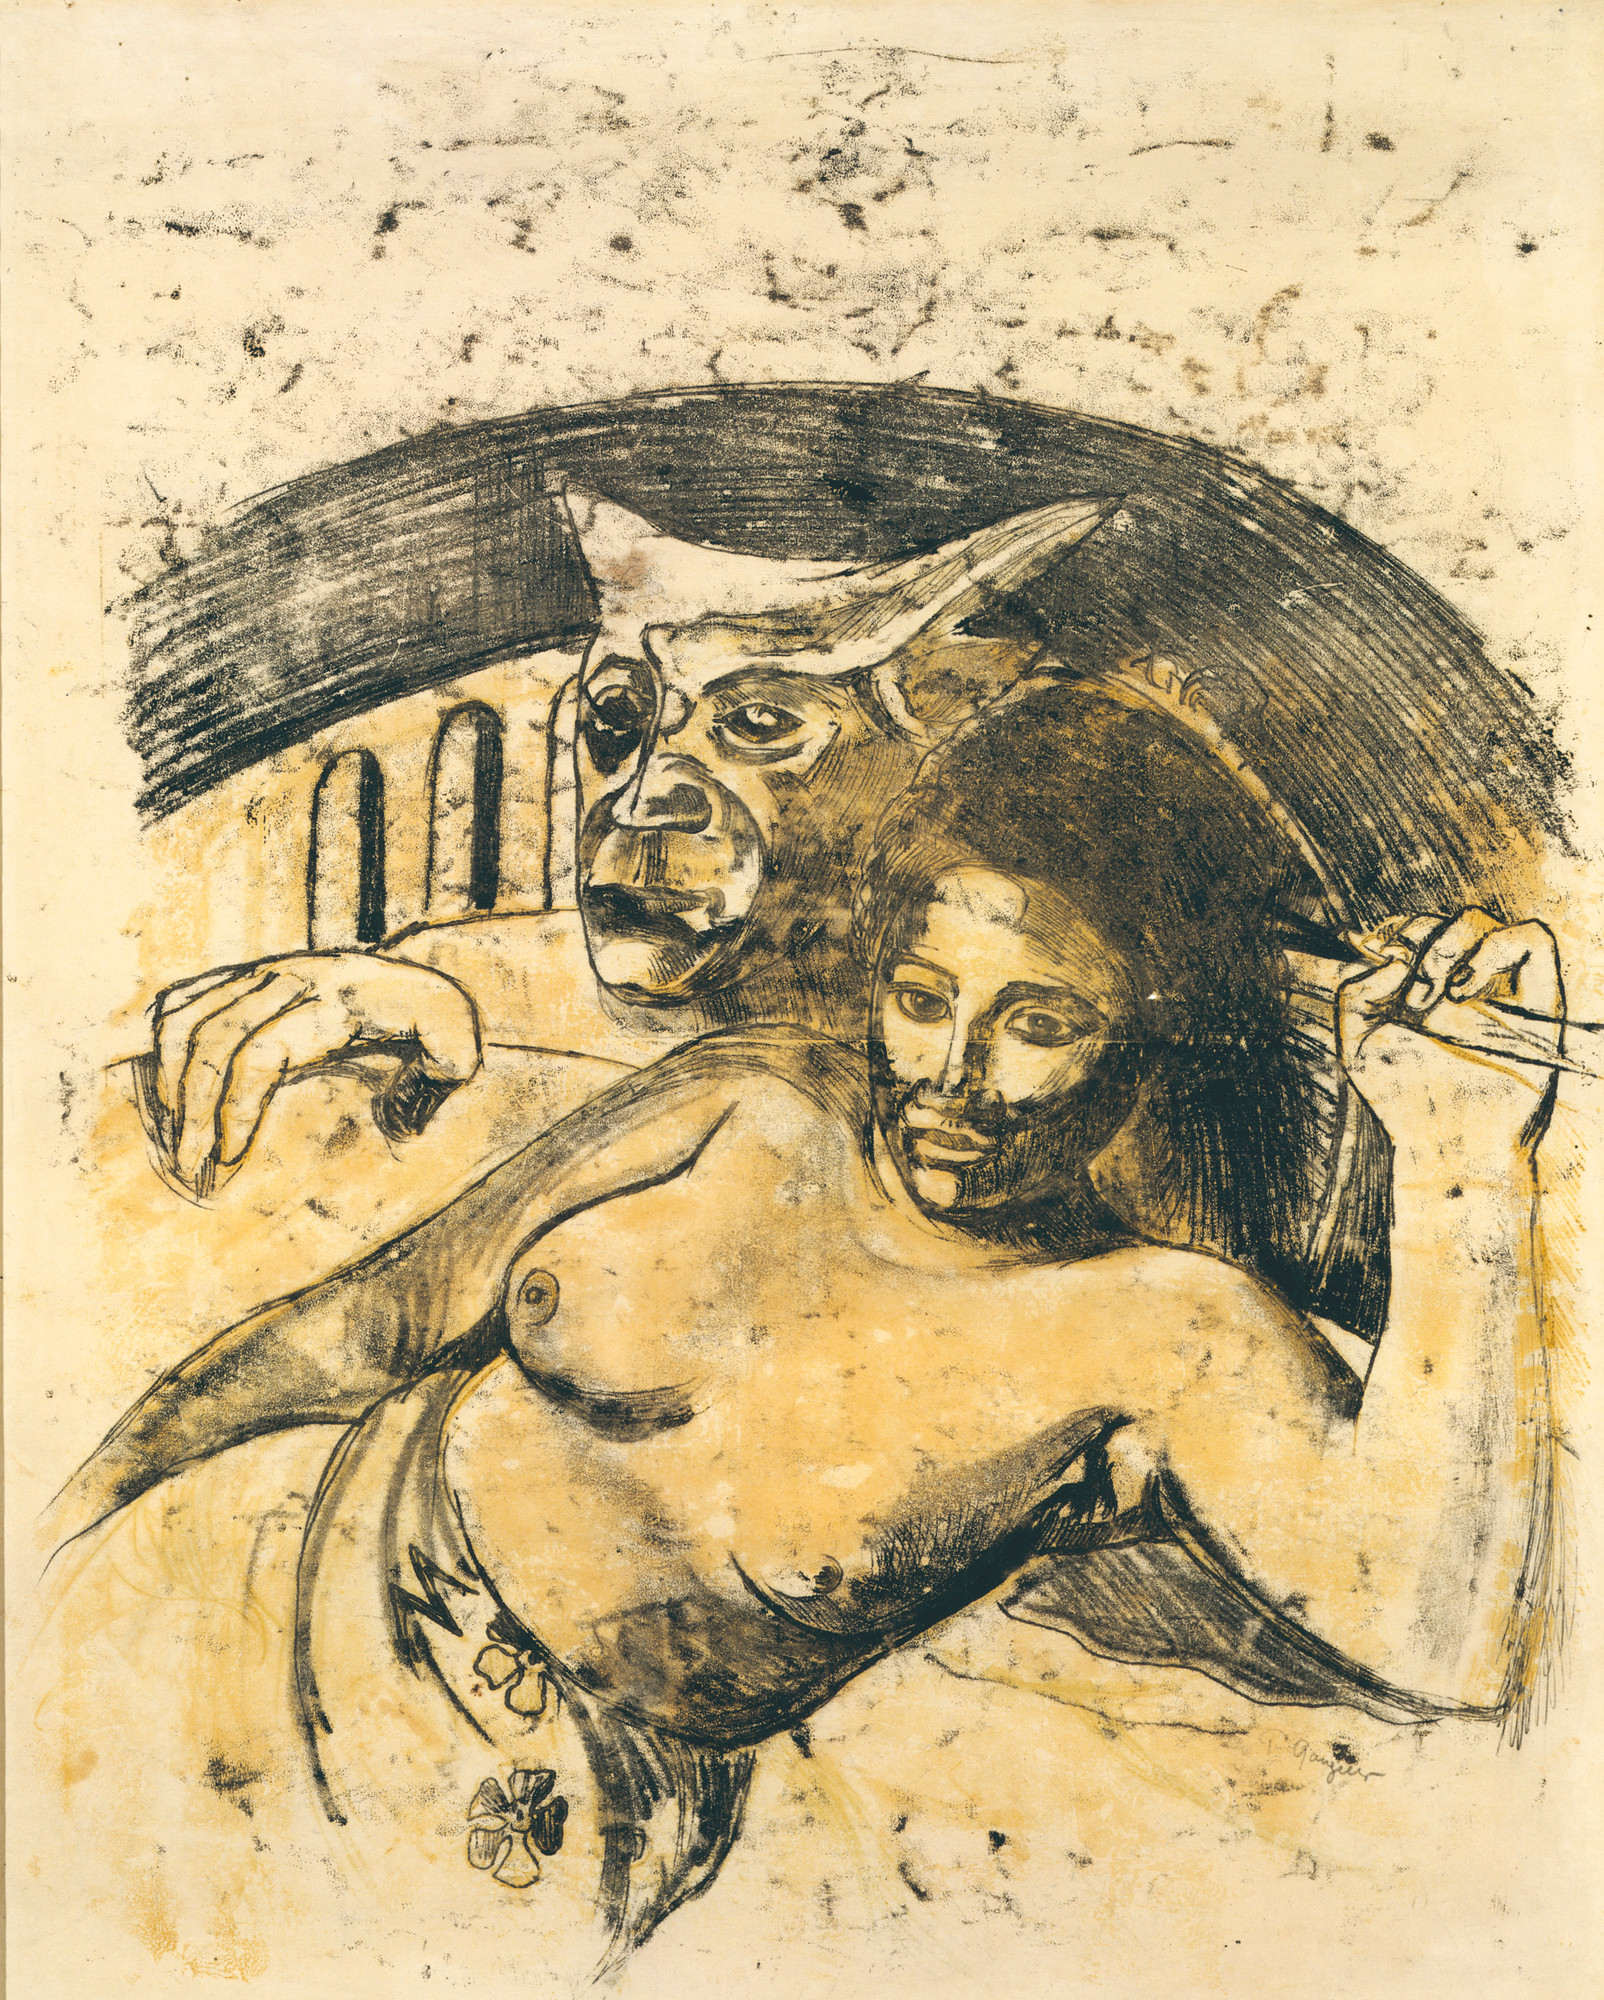 "Paul Gauguin. Tahitian Woman with Evil Spirit. c. 1900. Oil transfer drawing, sheet: 22 1⁄16 x 17 13⁄16"" (56.1 x 45.3 cm). Private collection"